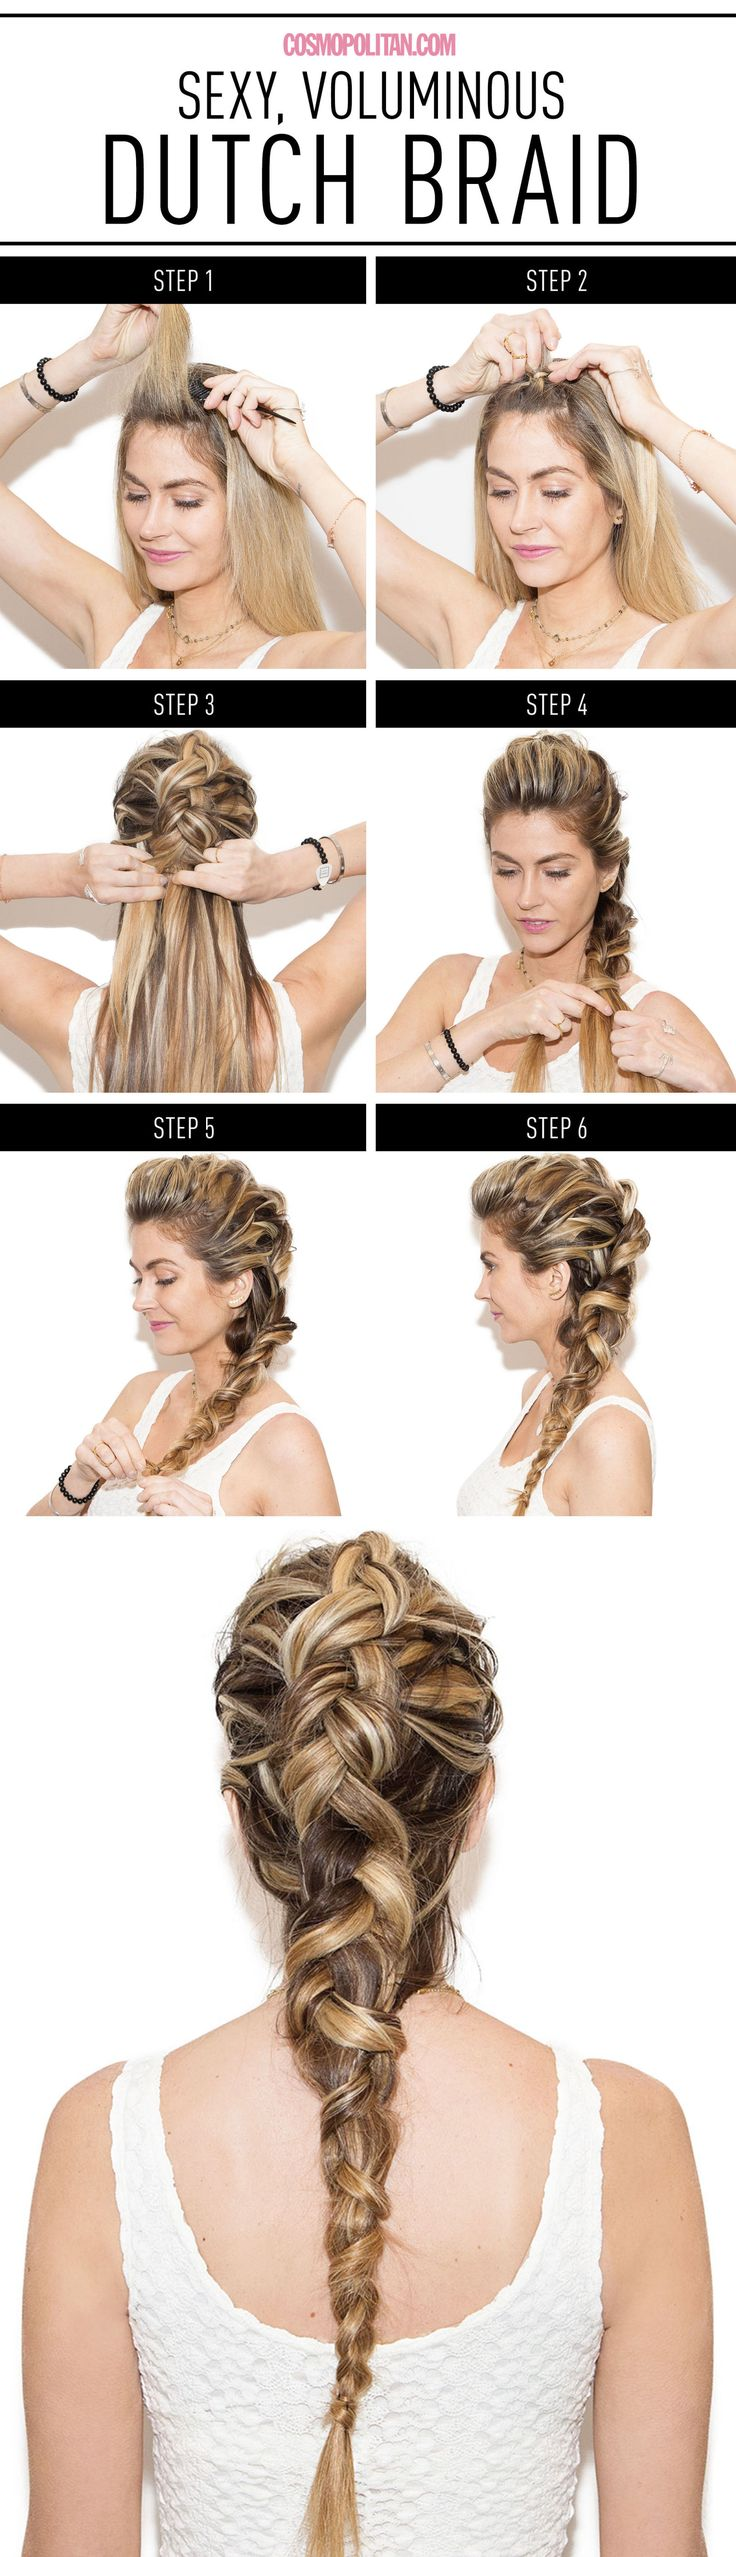 Say hello to your new favorite braid <3